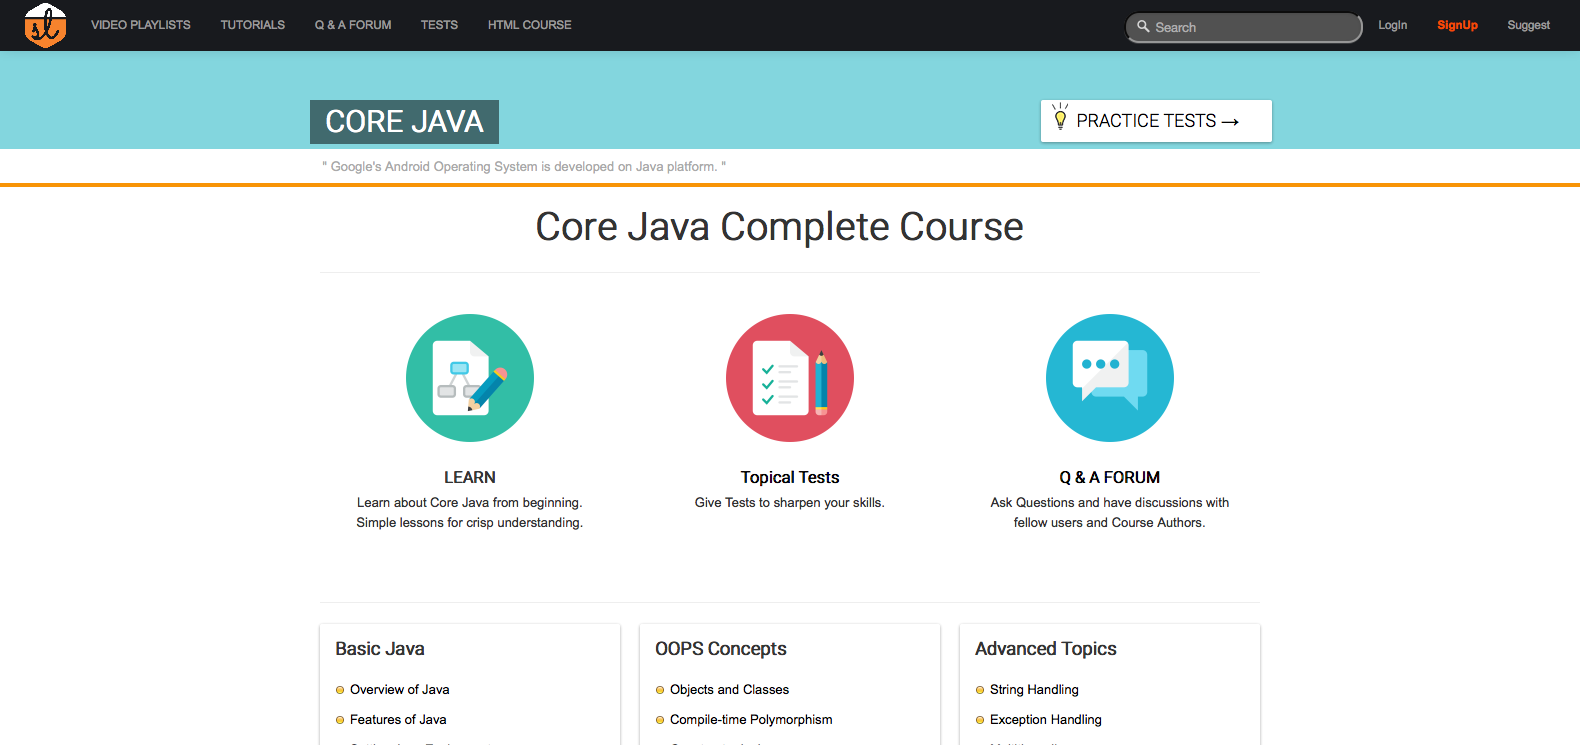 learn java online a guide codementor another source of simple and easy to understand beginner tutorials not just for java but also for other computer programming subjects like ruby c jsp